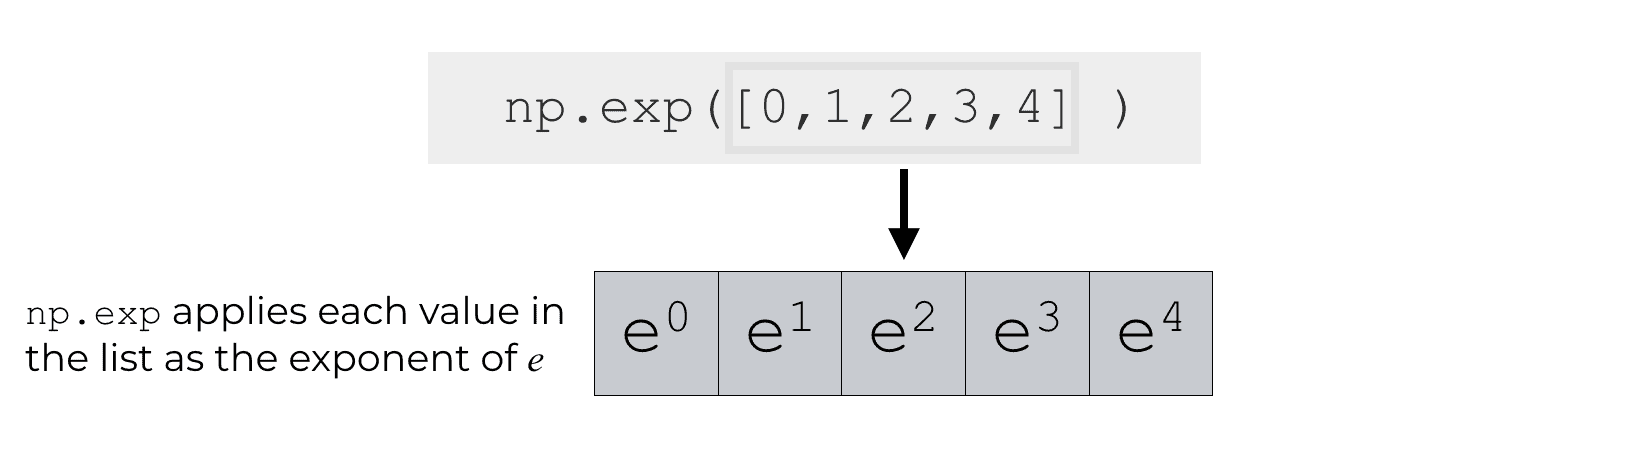 An explanation of how numpy.exp operates on a 1-d array.